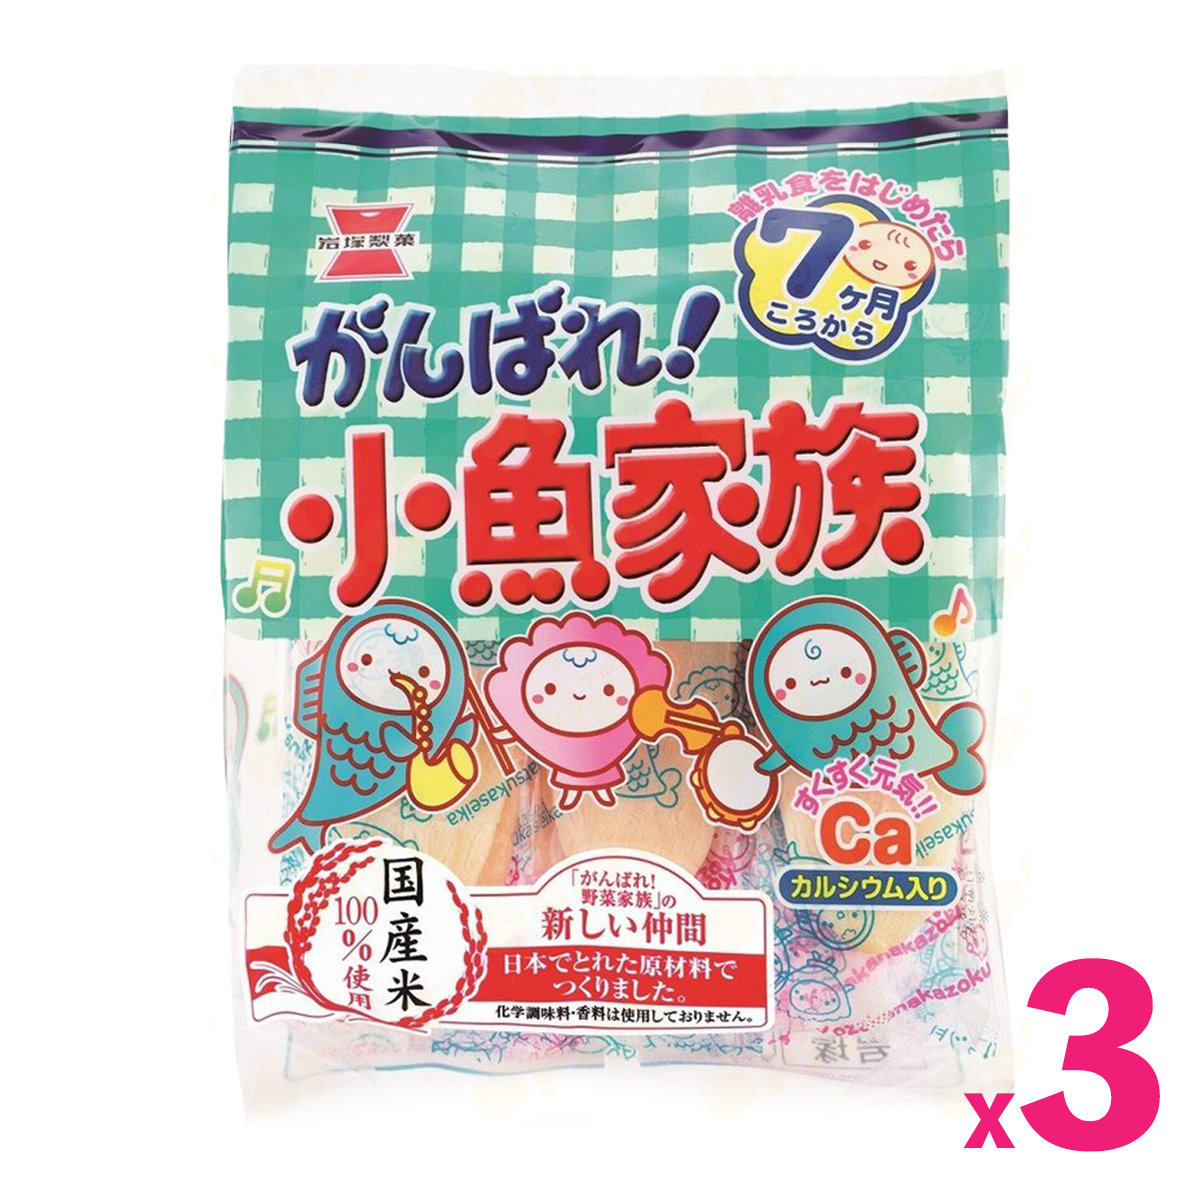 Seafood Baby Rice Puff (26pcs) x 3